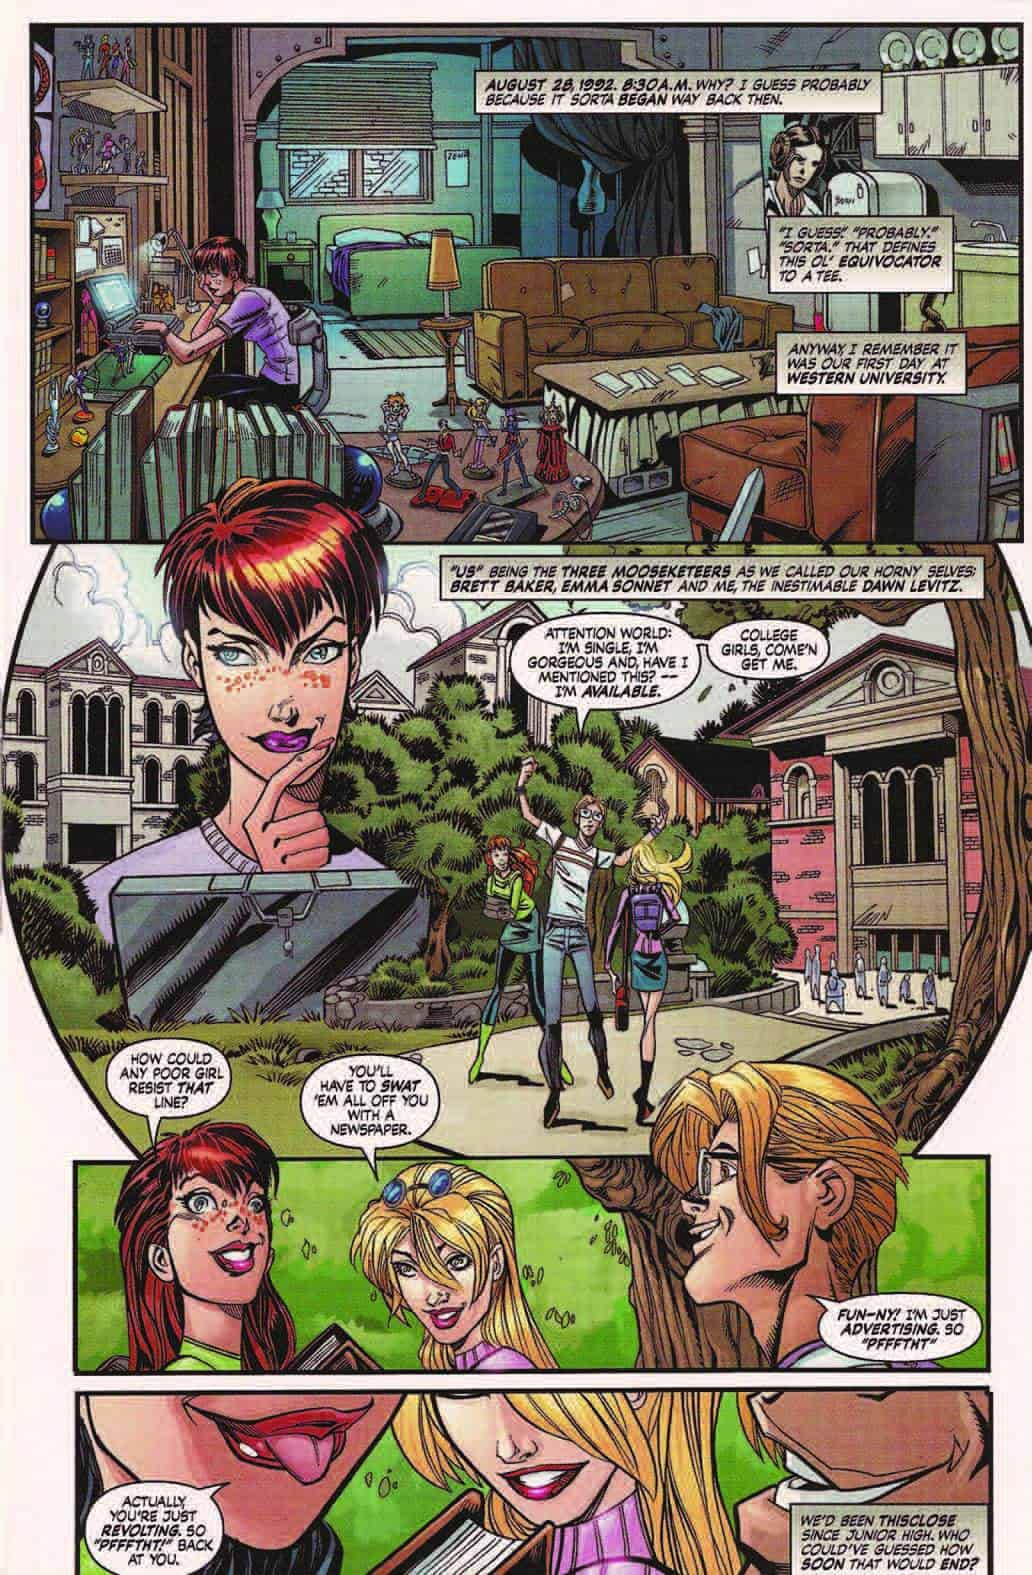 10th-Muse-Vol-1-the-Image-Comics-Run-Part-1-Image-04